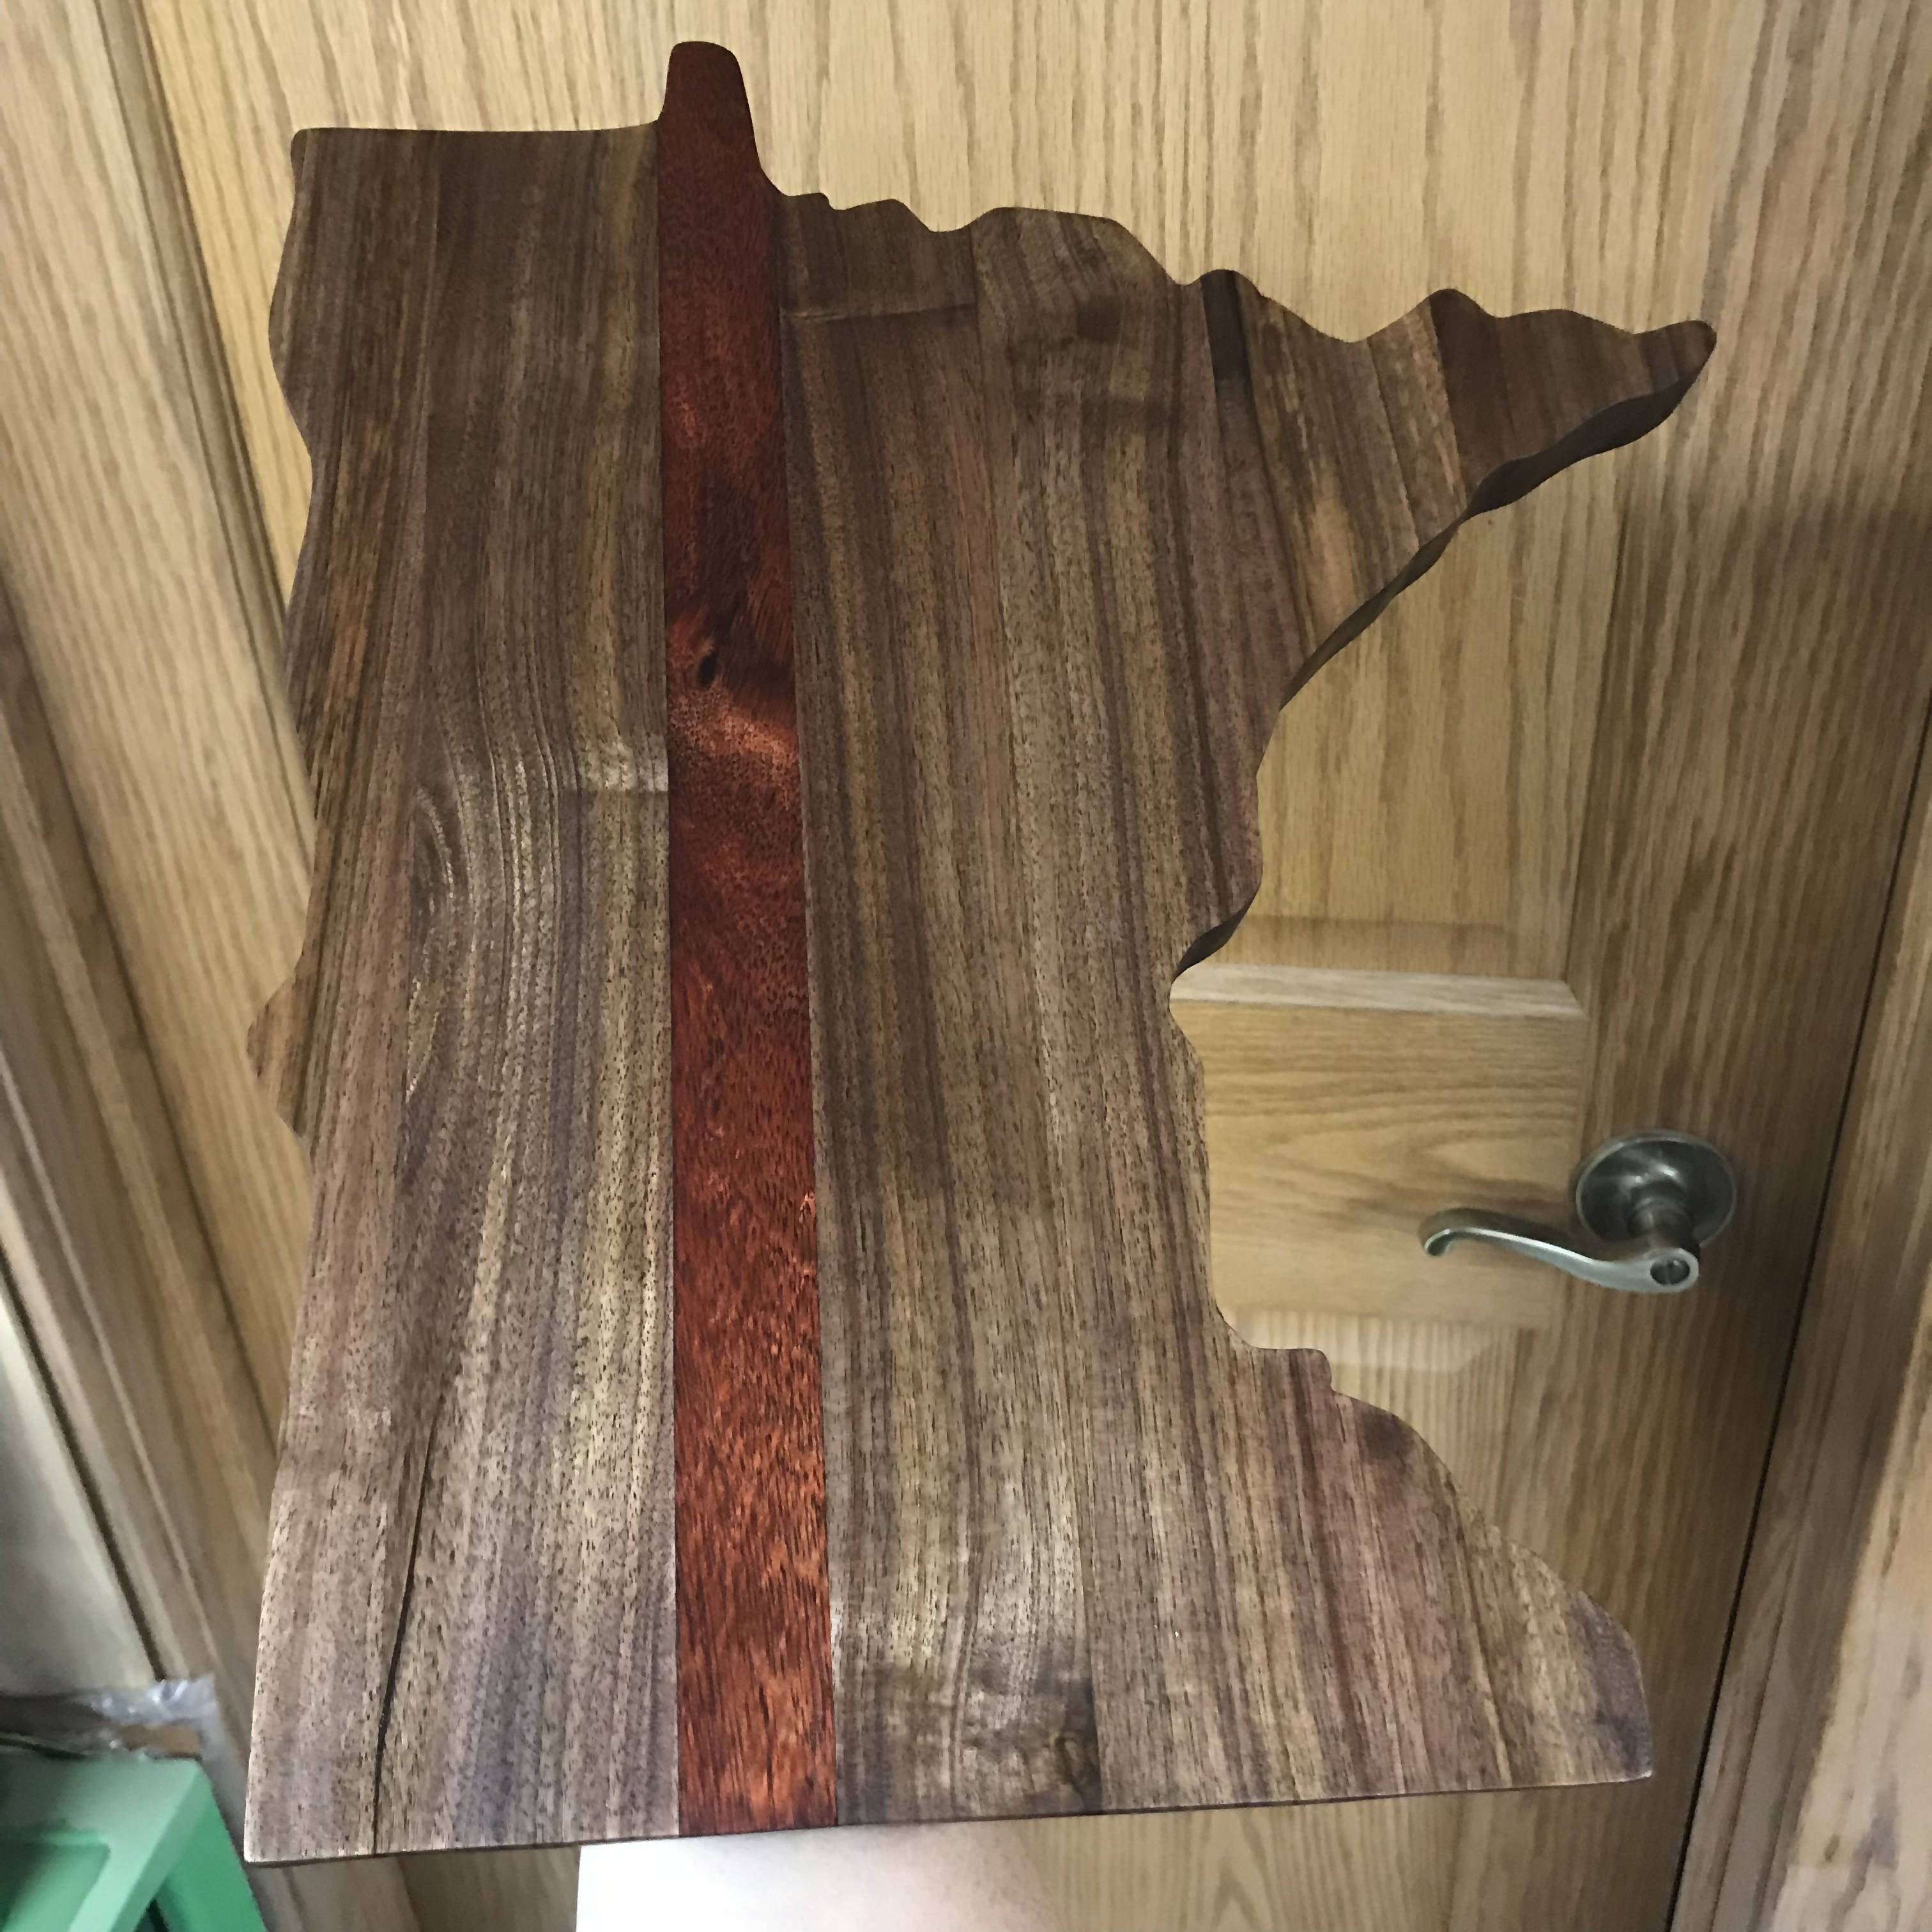 MN Cutting Board - Cave Market Artisan Home Goods and Furniture